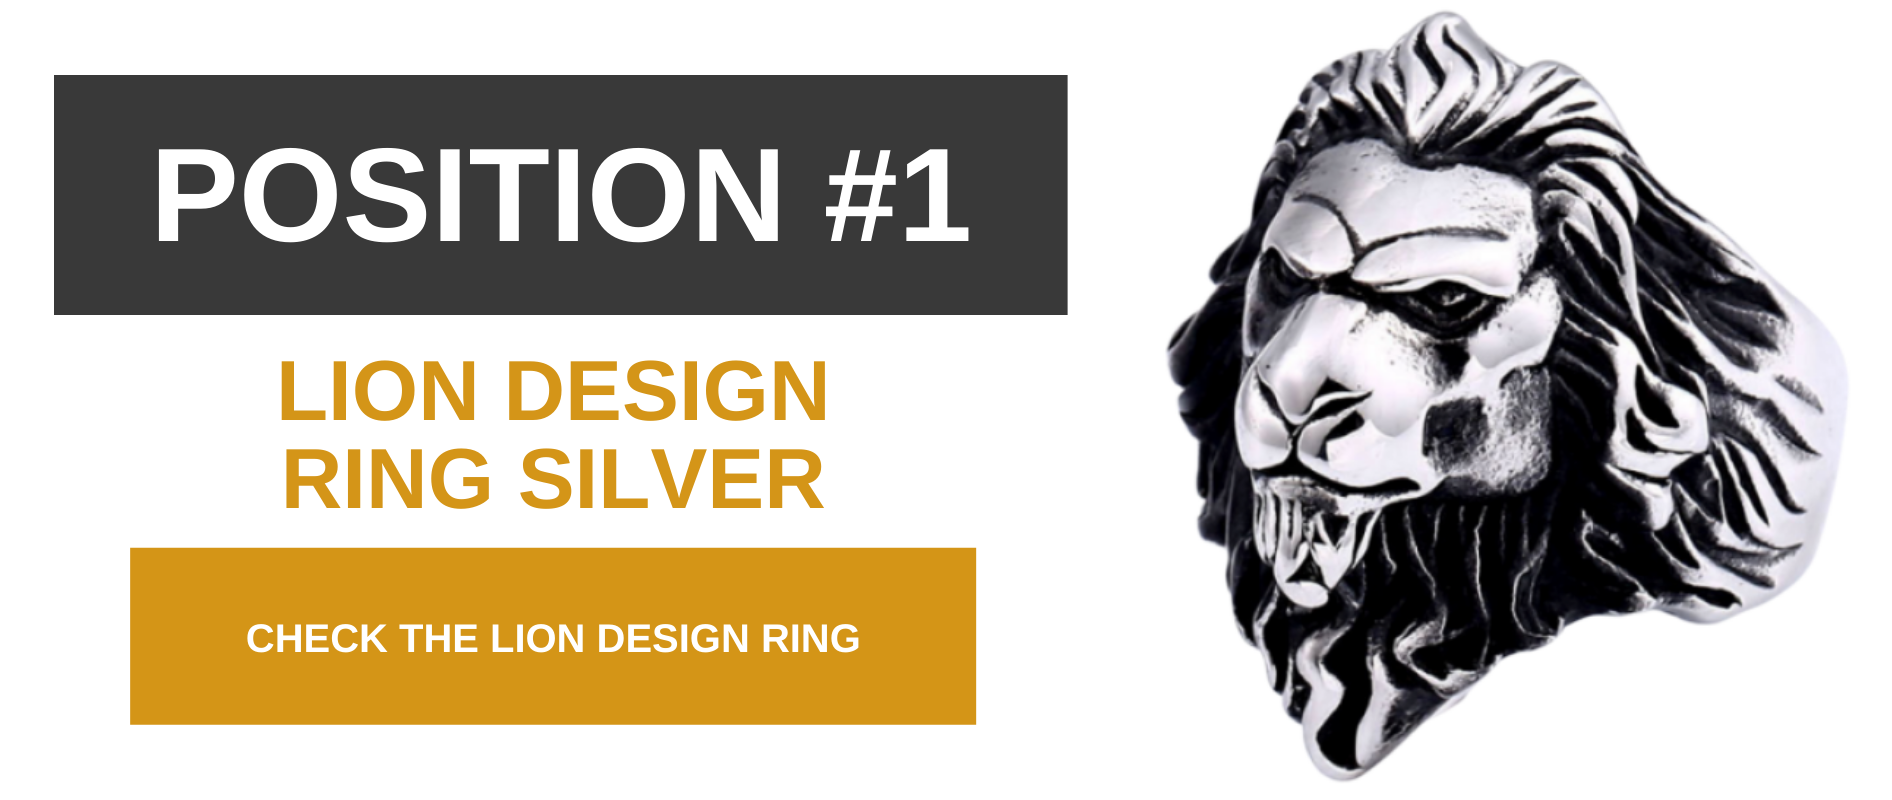 Lion design ring silver.